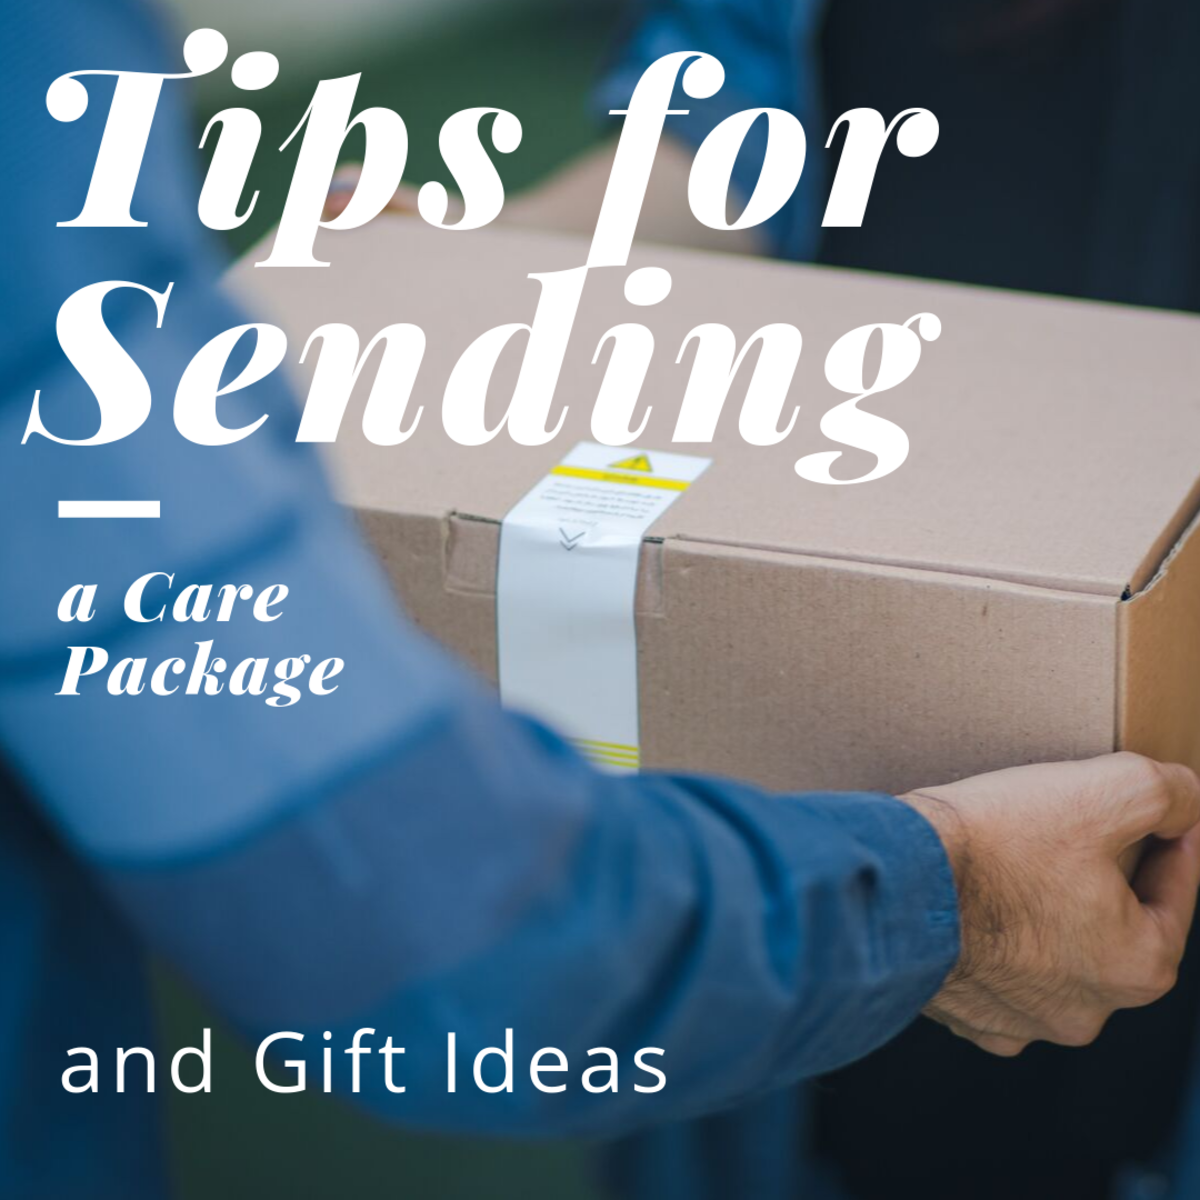 Care Package Gift Ideas